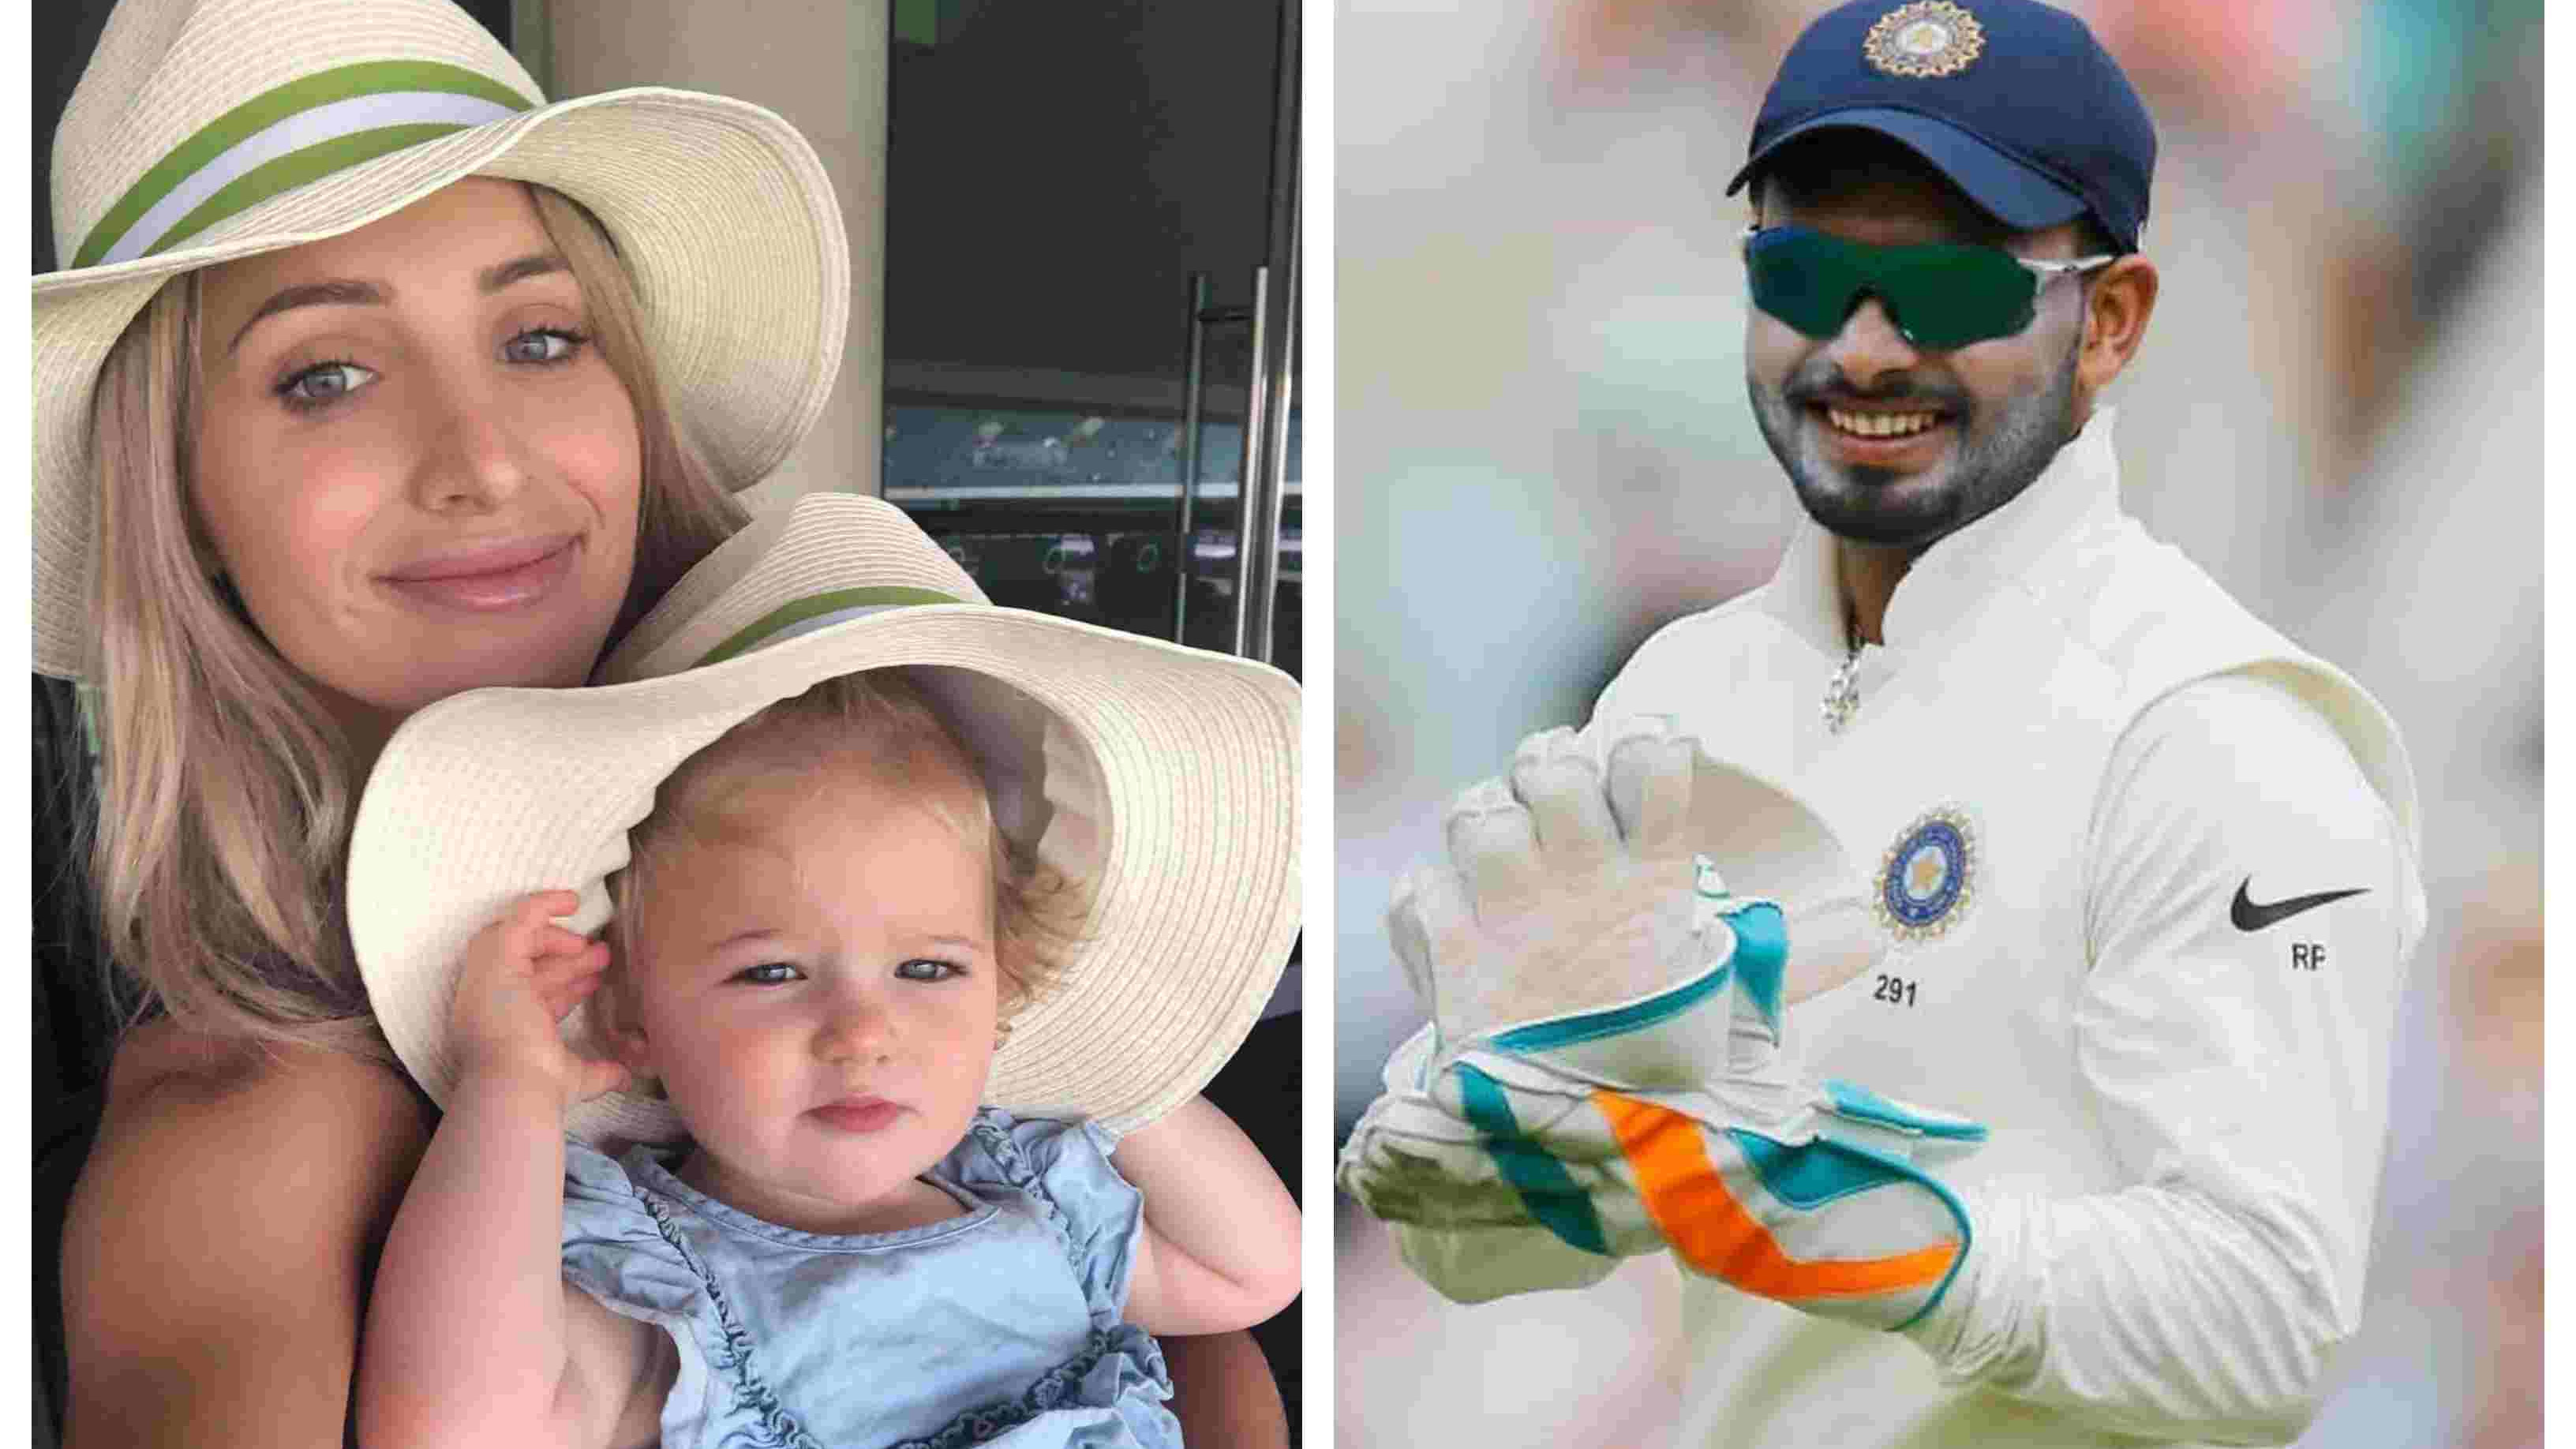 AUS v IND 2018-19: Tim Paine's wife invites Rishabh Pant to babysit her kid